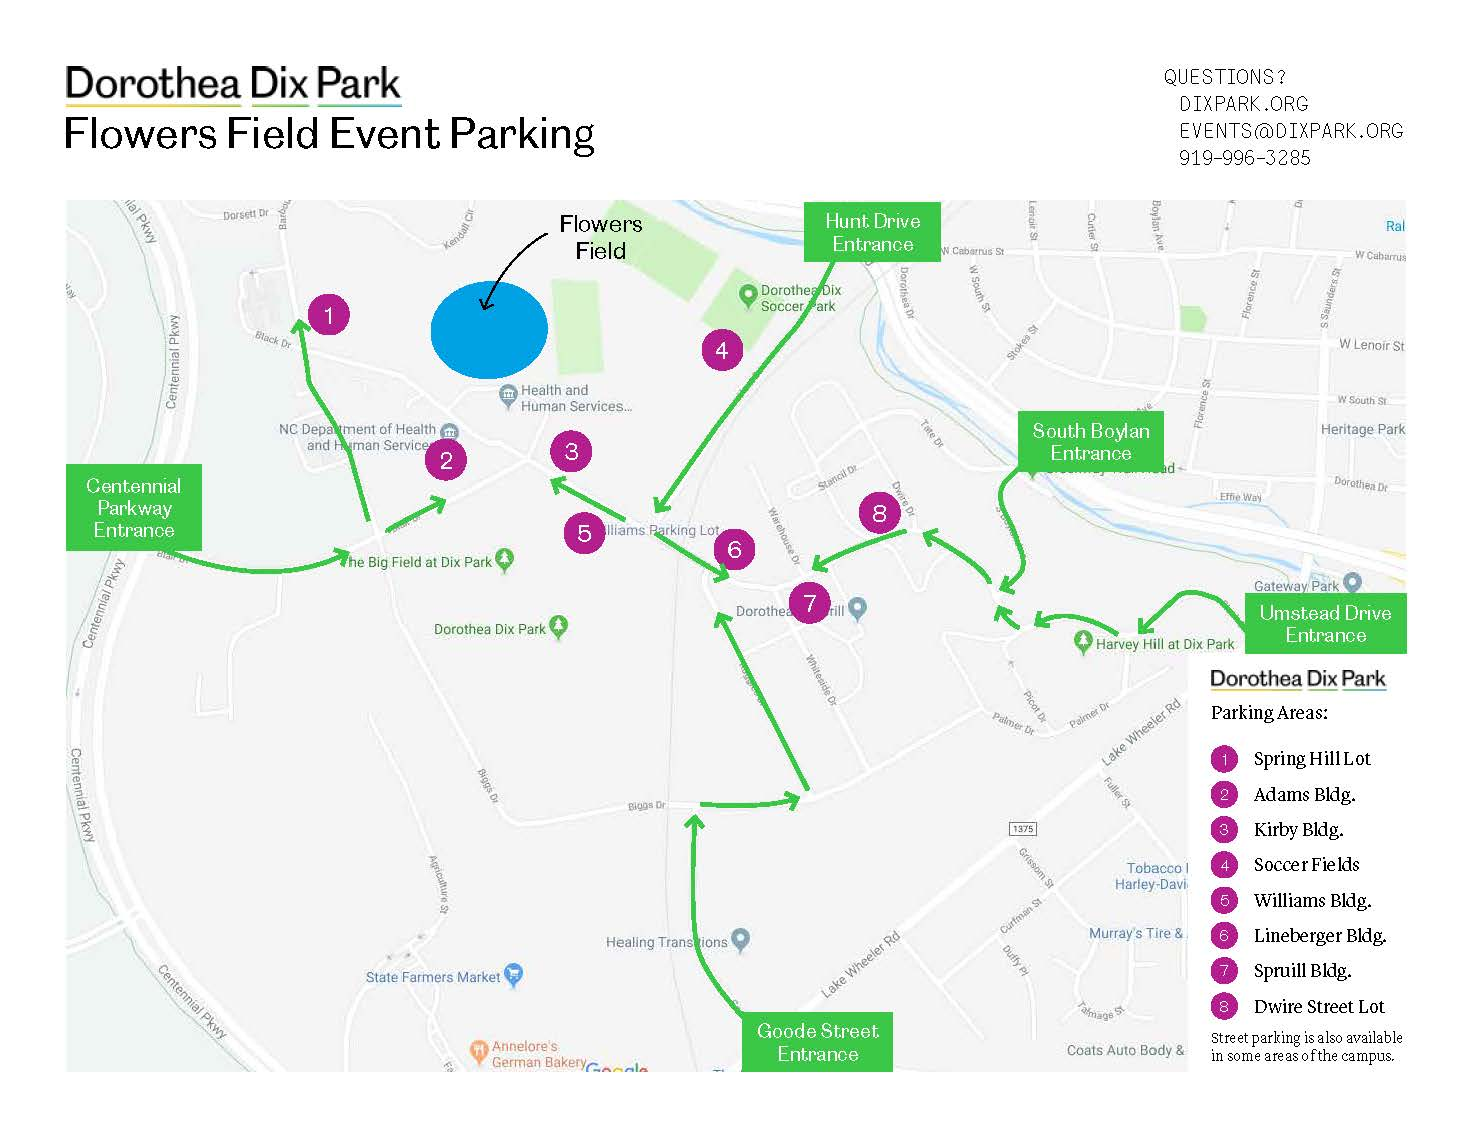 Dix Park Event Parking Map for Flowers Field